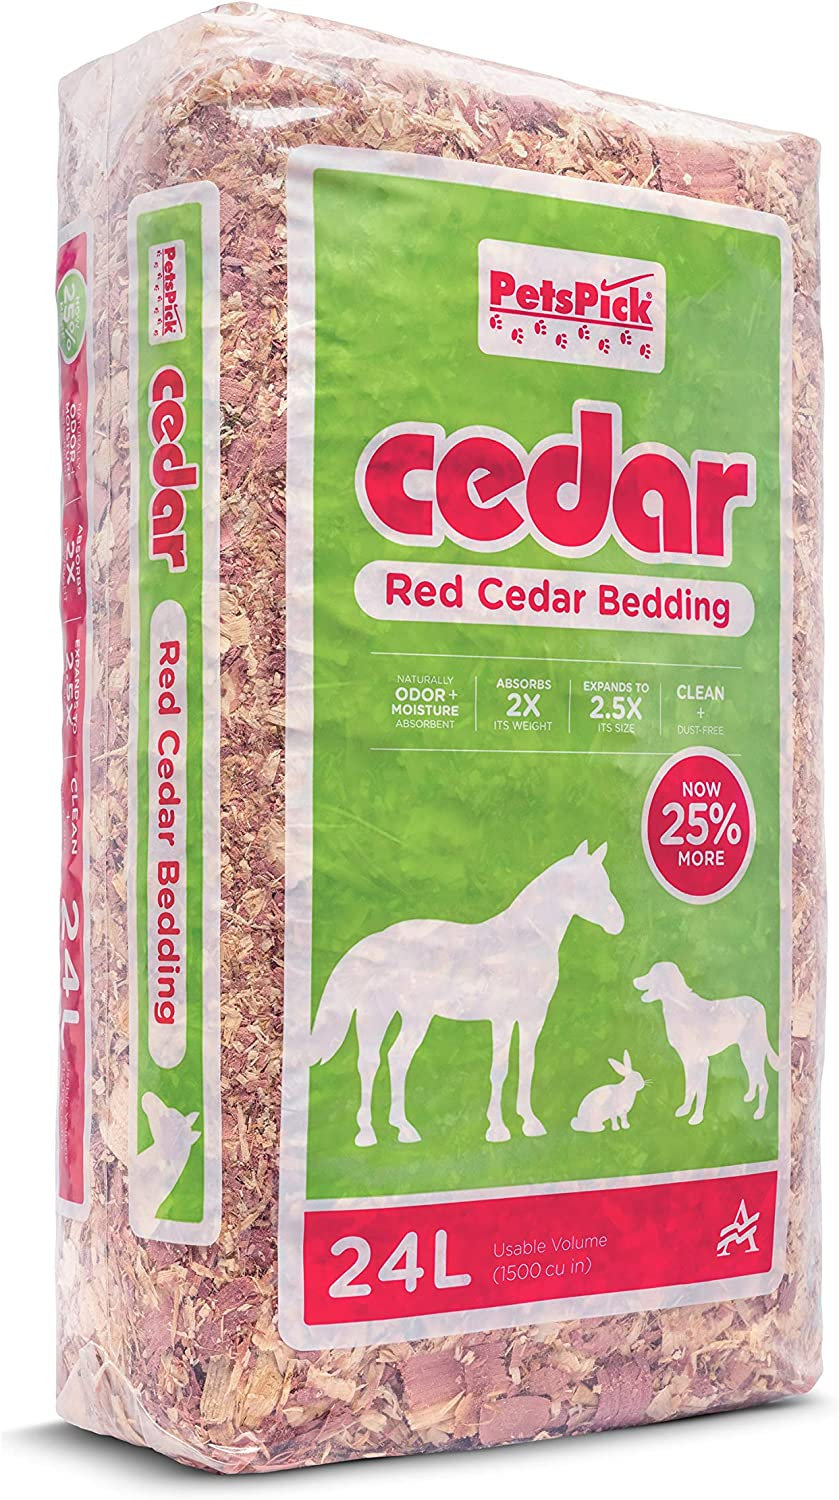 PETSPICK Red Cedar Pet Bedding for Dogs and Horses